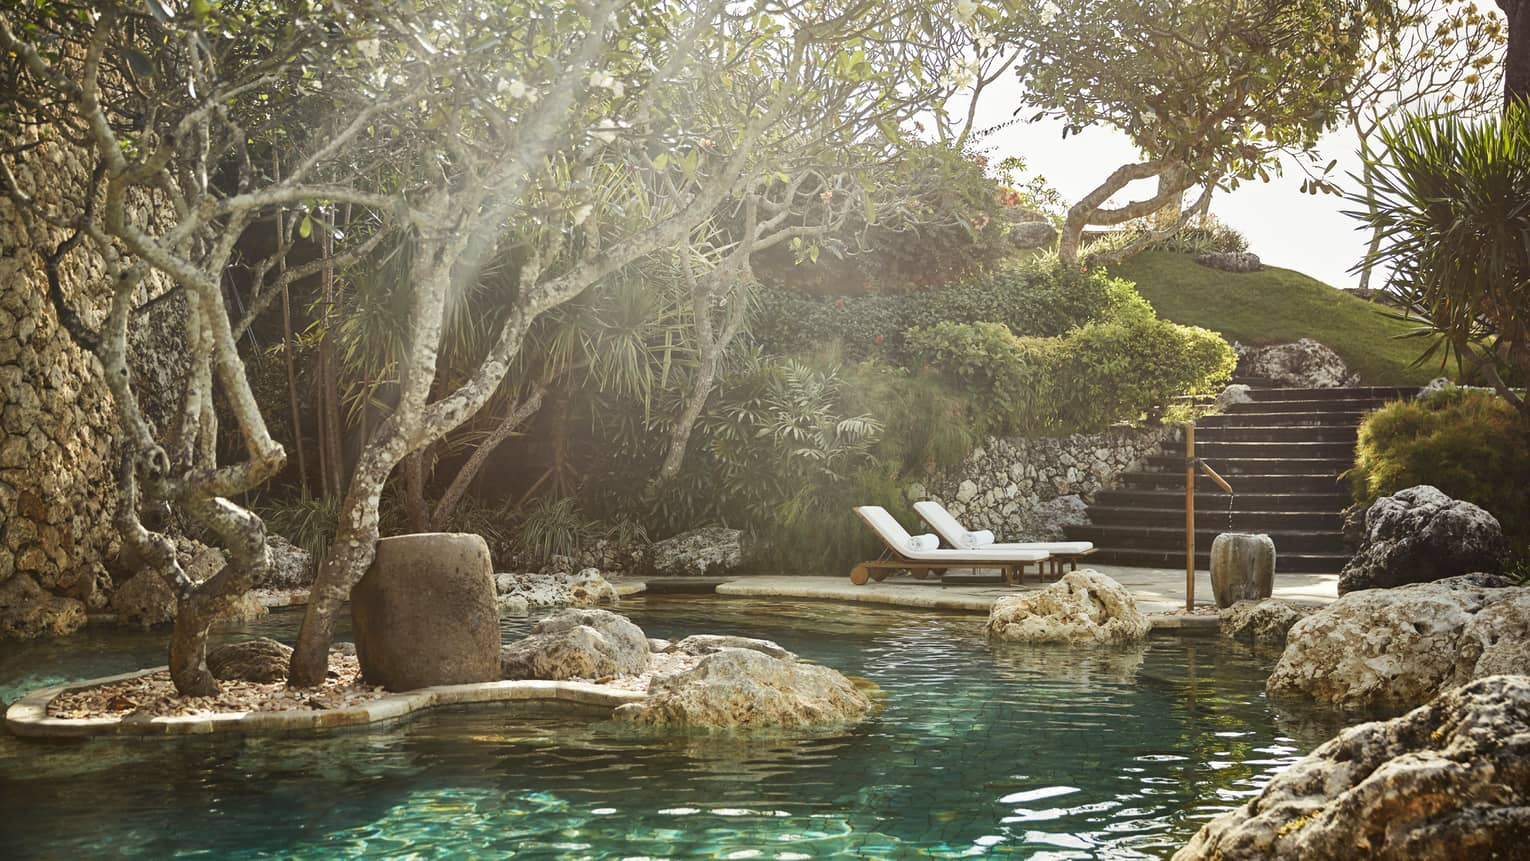 Sunny view of pool surrounded by boulders, rock wall, tree on rock in water, pool chairs and steps nearby